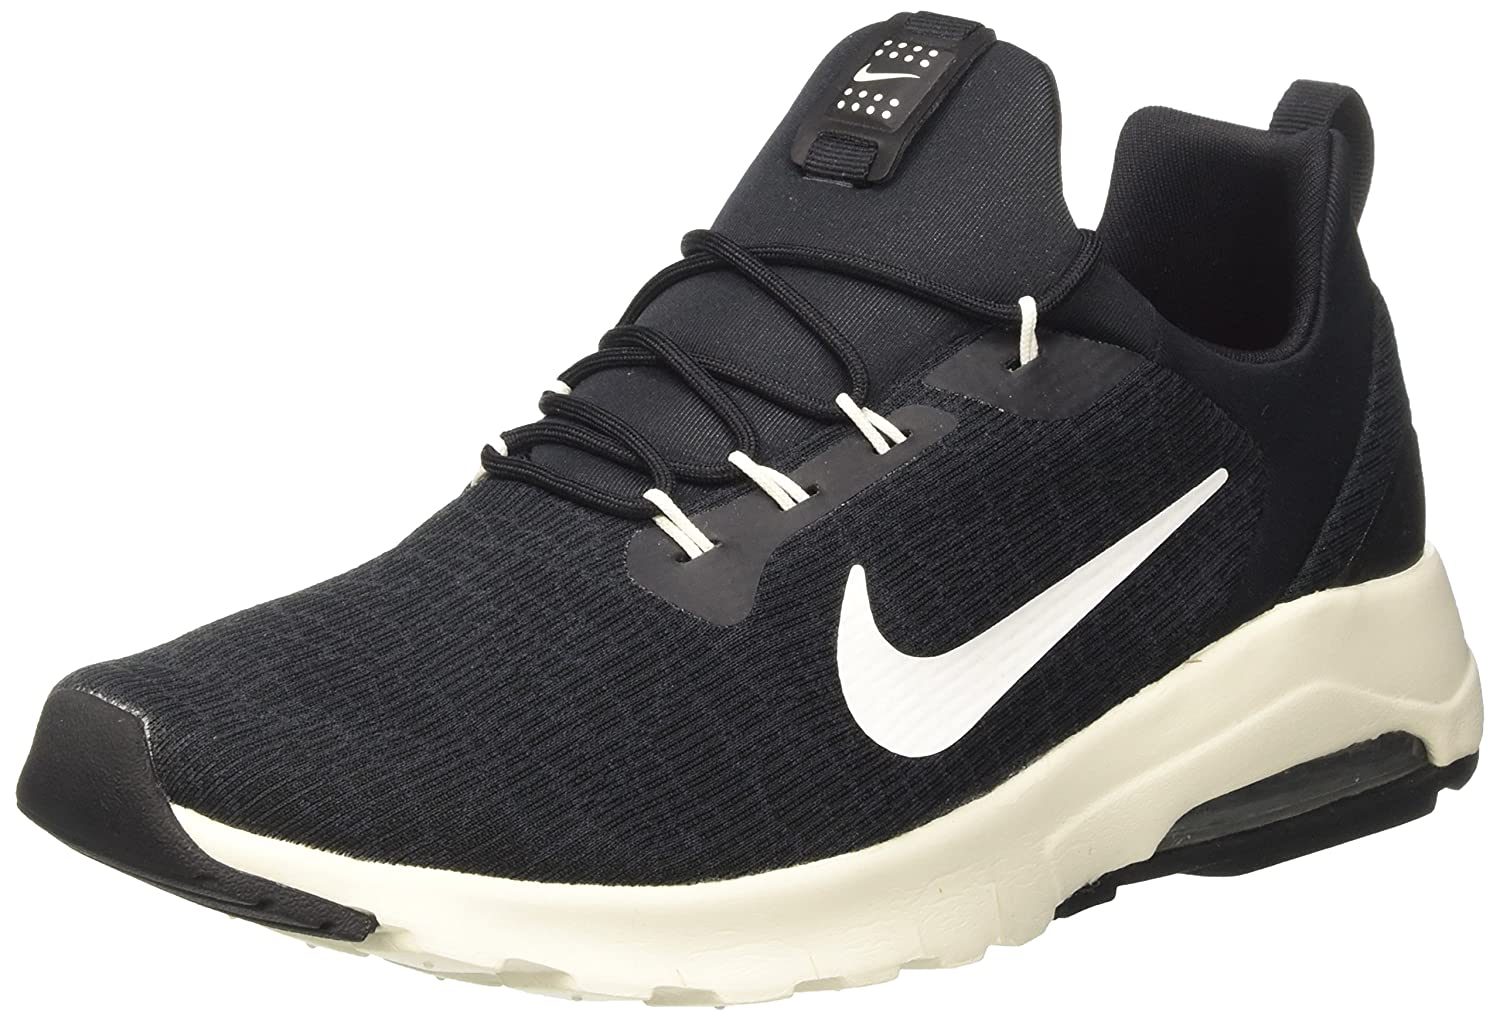 Nike Air MAX Motion Racer, Zapatillas para Hombre 44 EU|Negro (Black/Sail-anthracite-cl)